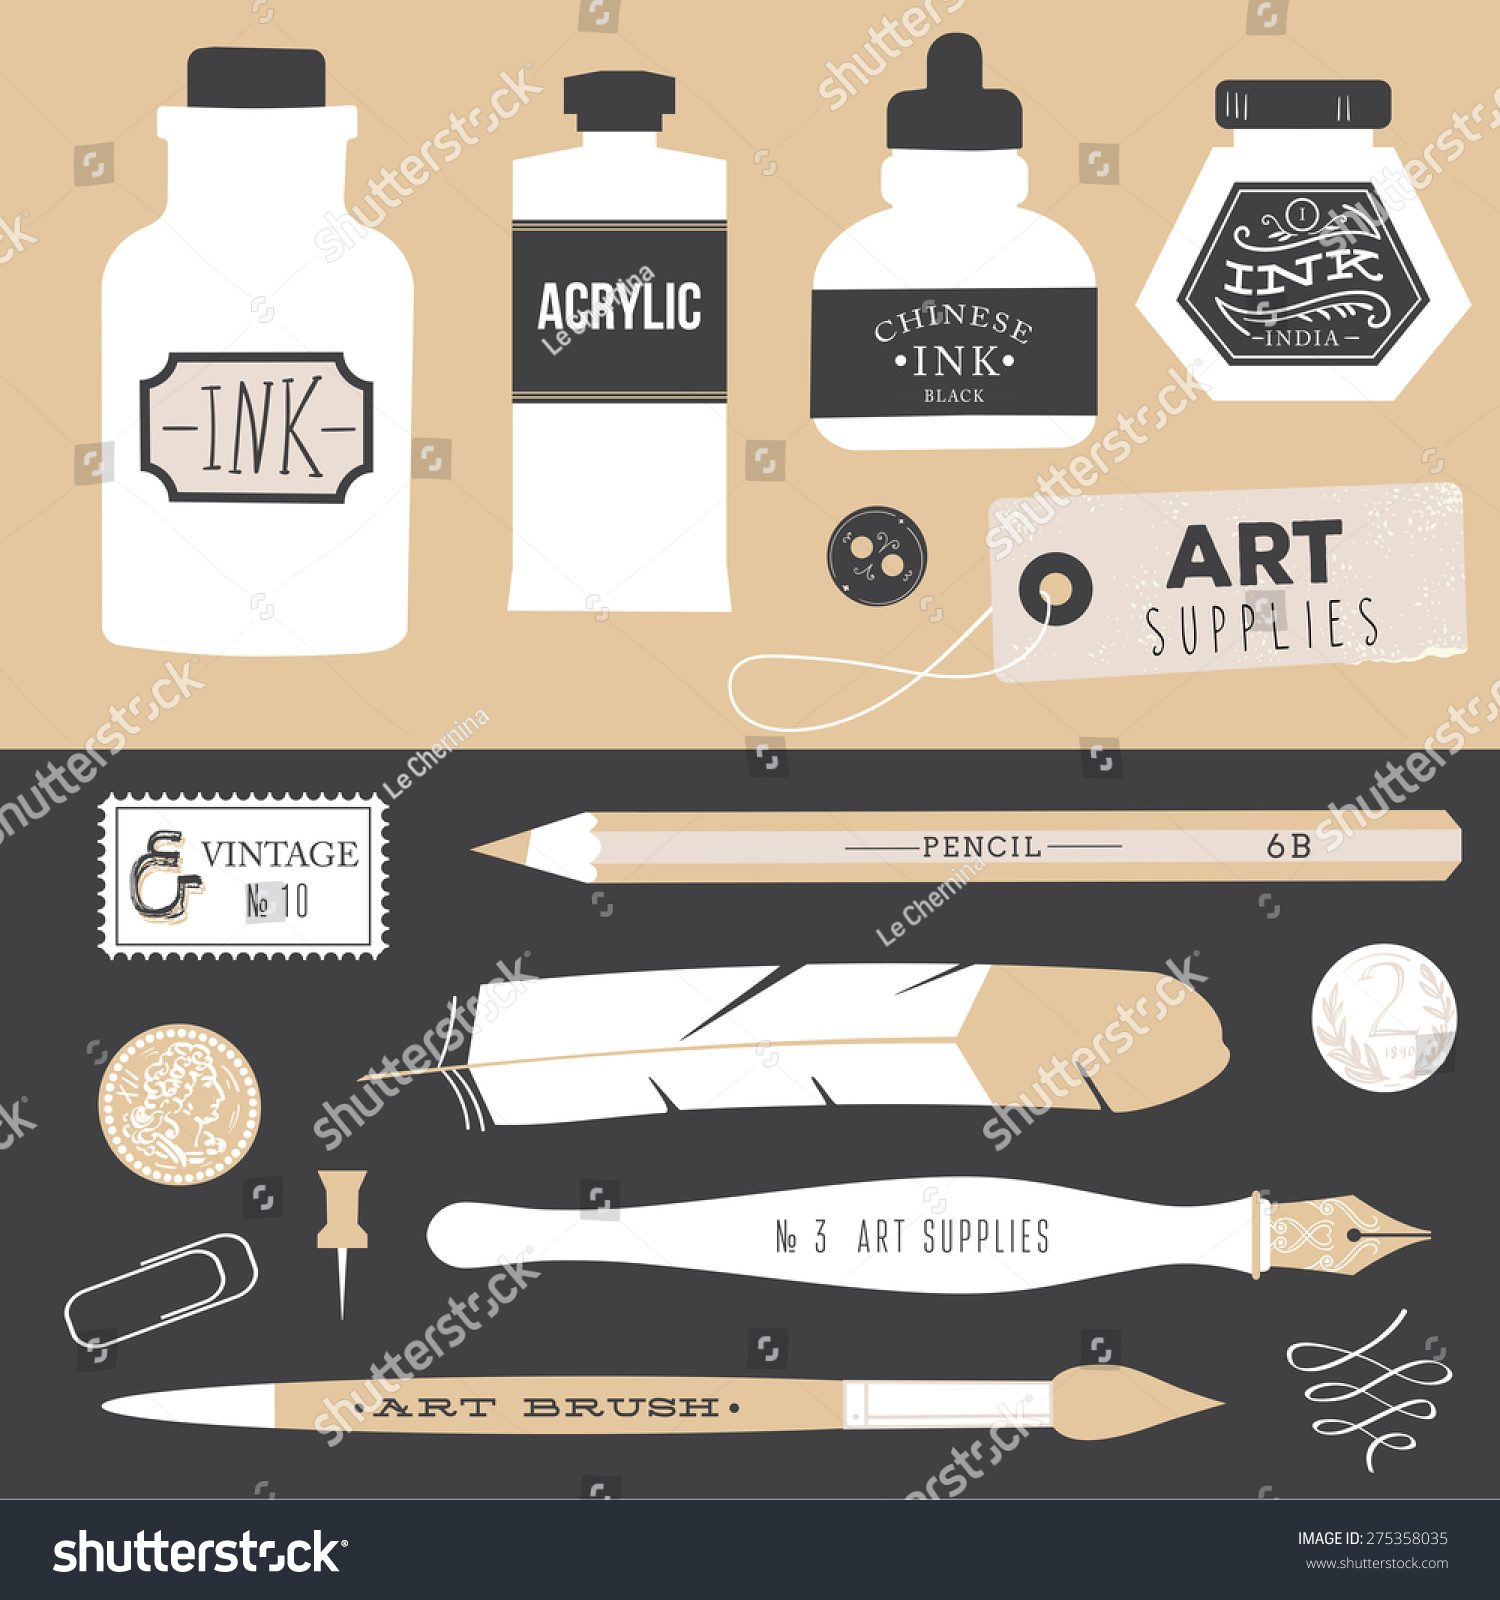 Vintage vector art tools - ink, fountain pe, tag, stamps, brush, pin -  Vector